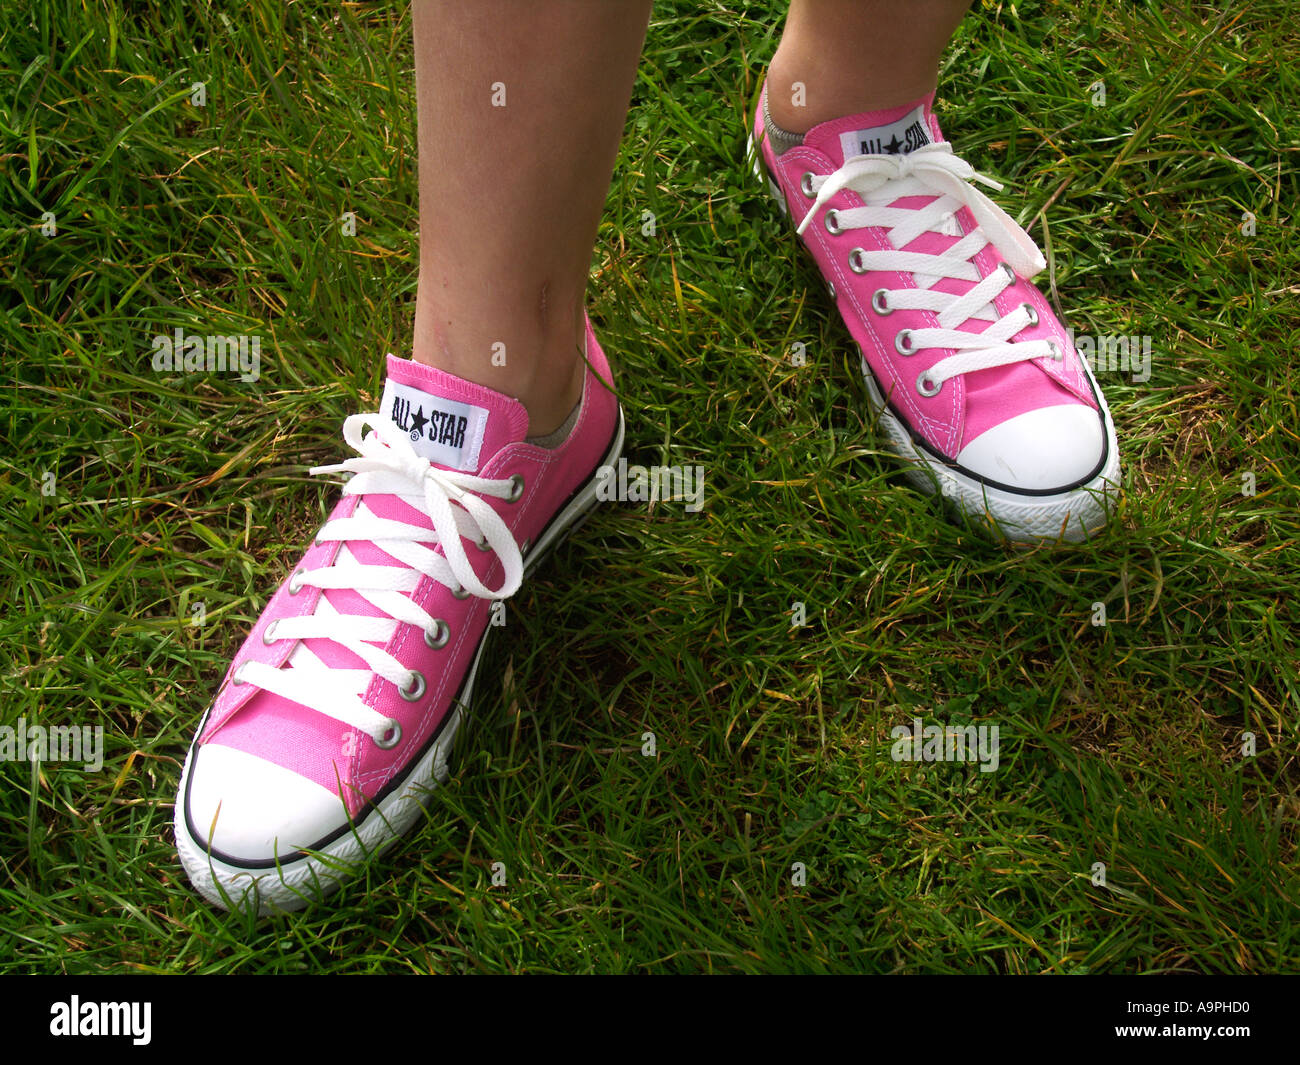 Girl Tennis Shoes On Sale